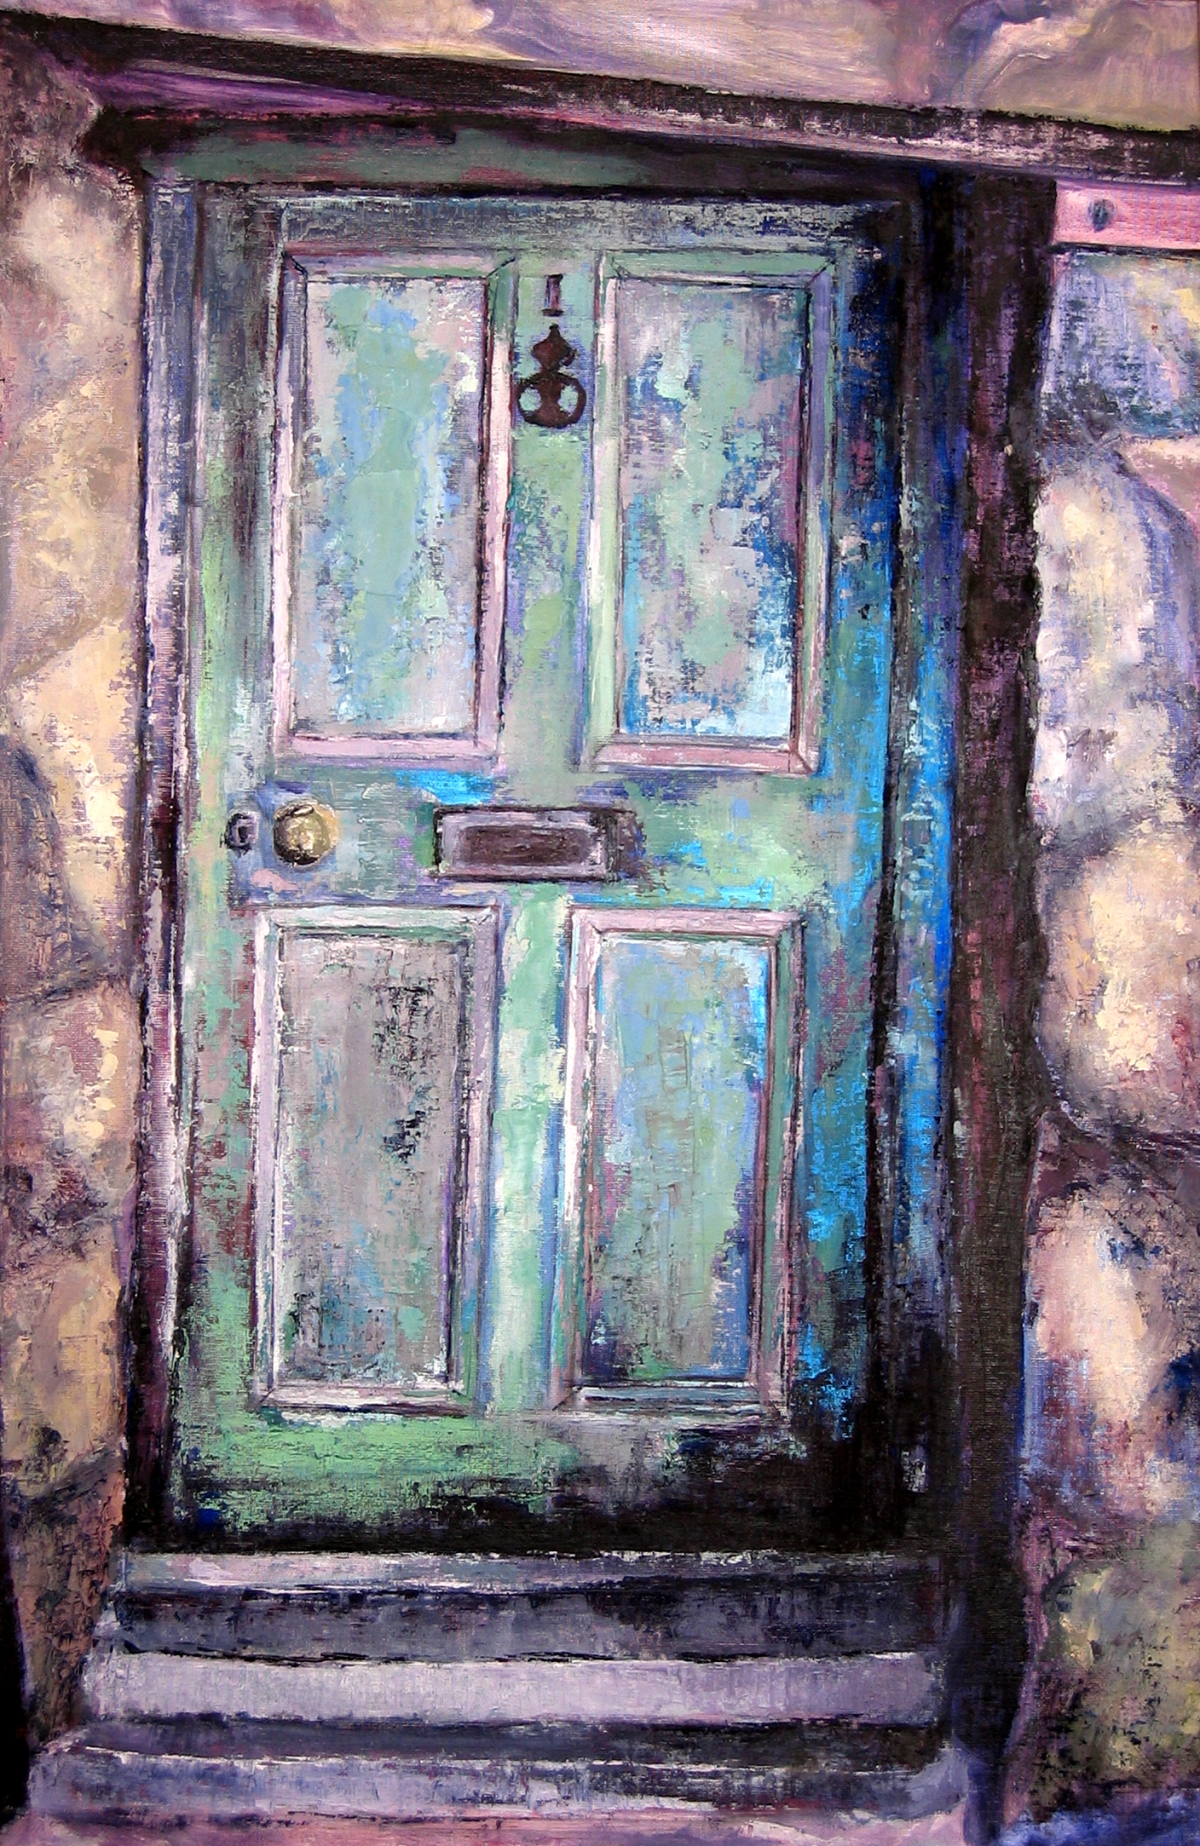 st-ives-door-oil-on-board-50cm-x-76cm